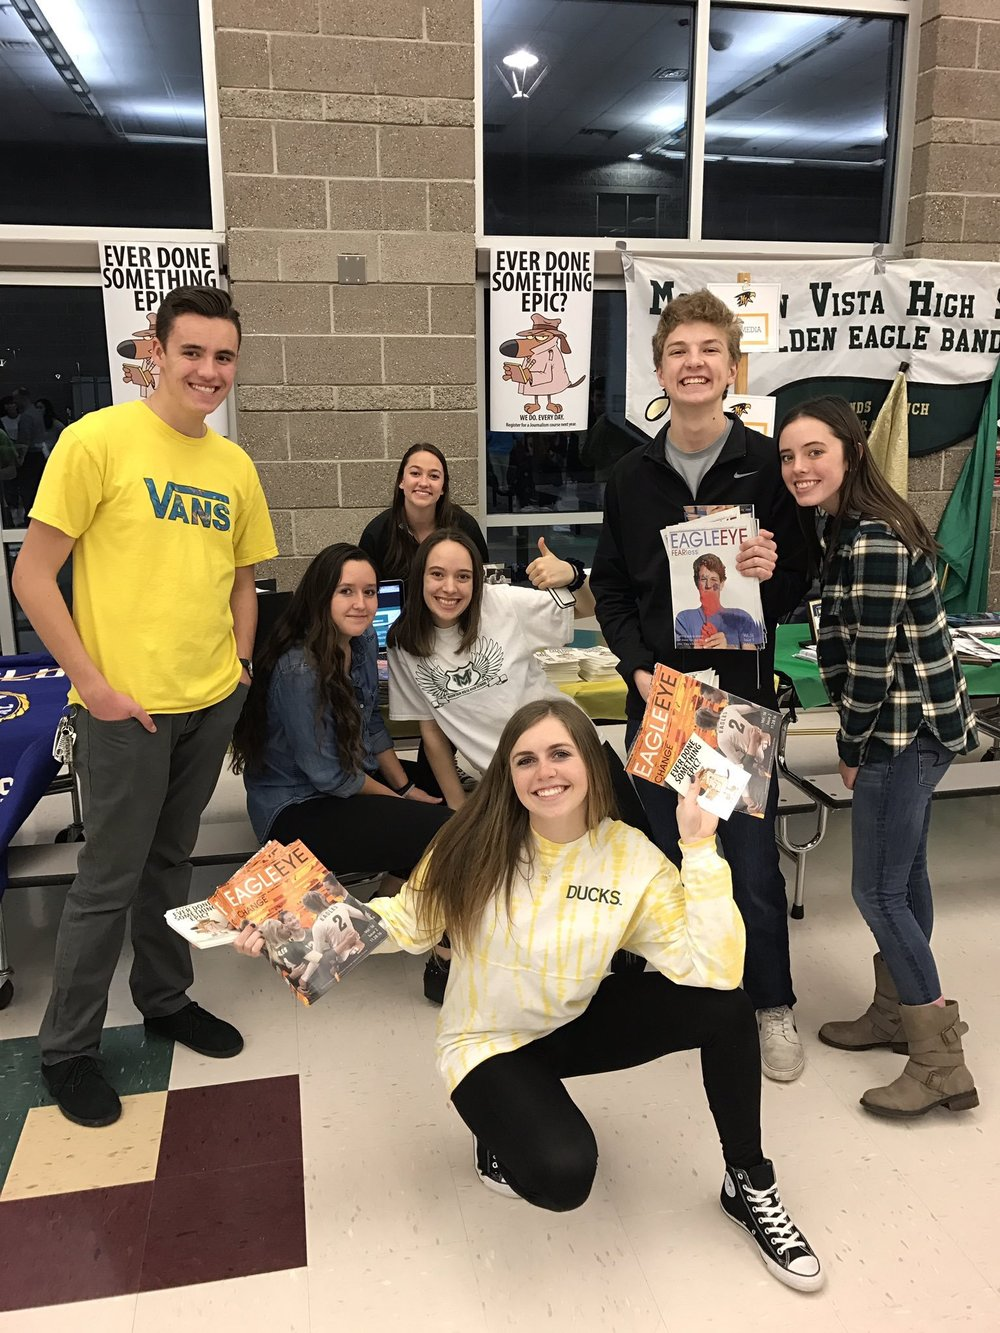 2016-2017 MV Media members promoted clubs, sports and academics at Vista during an eighth grade night.